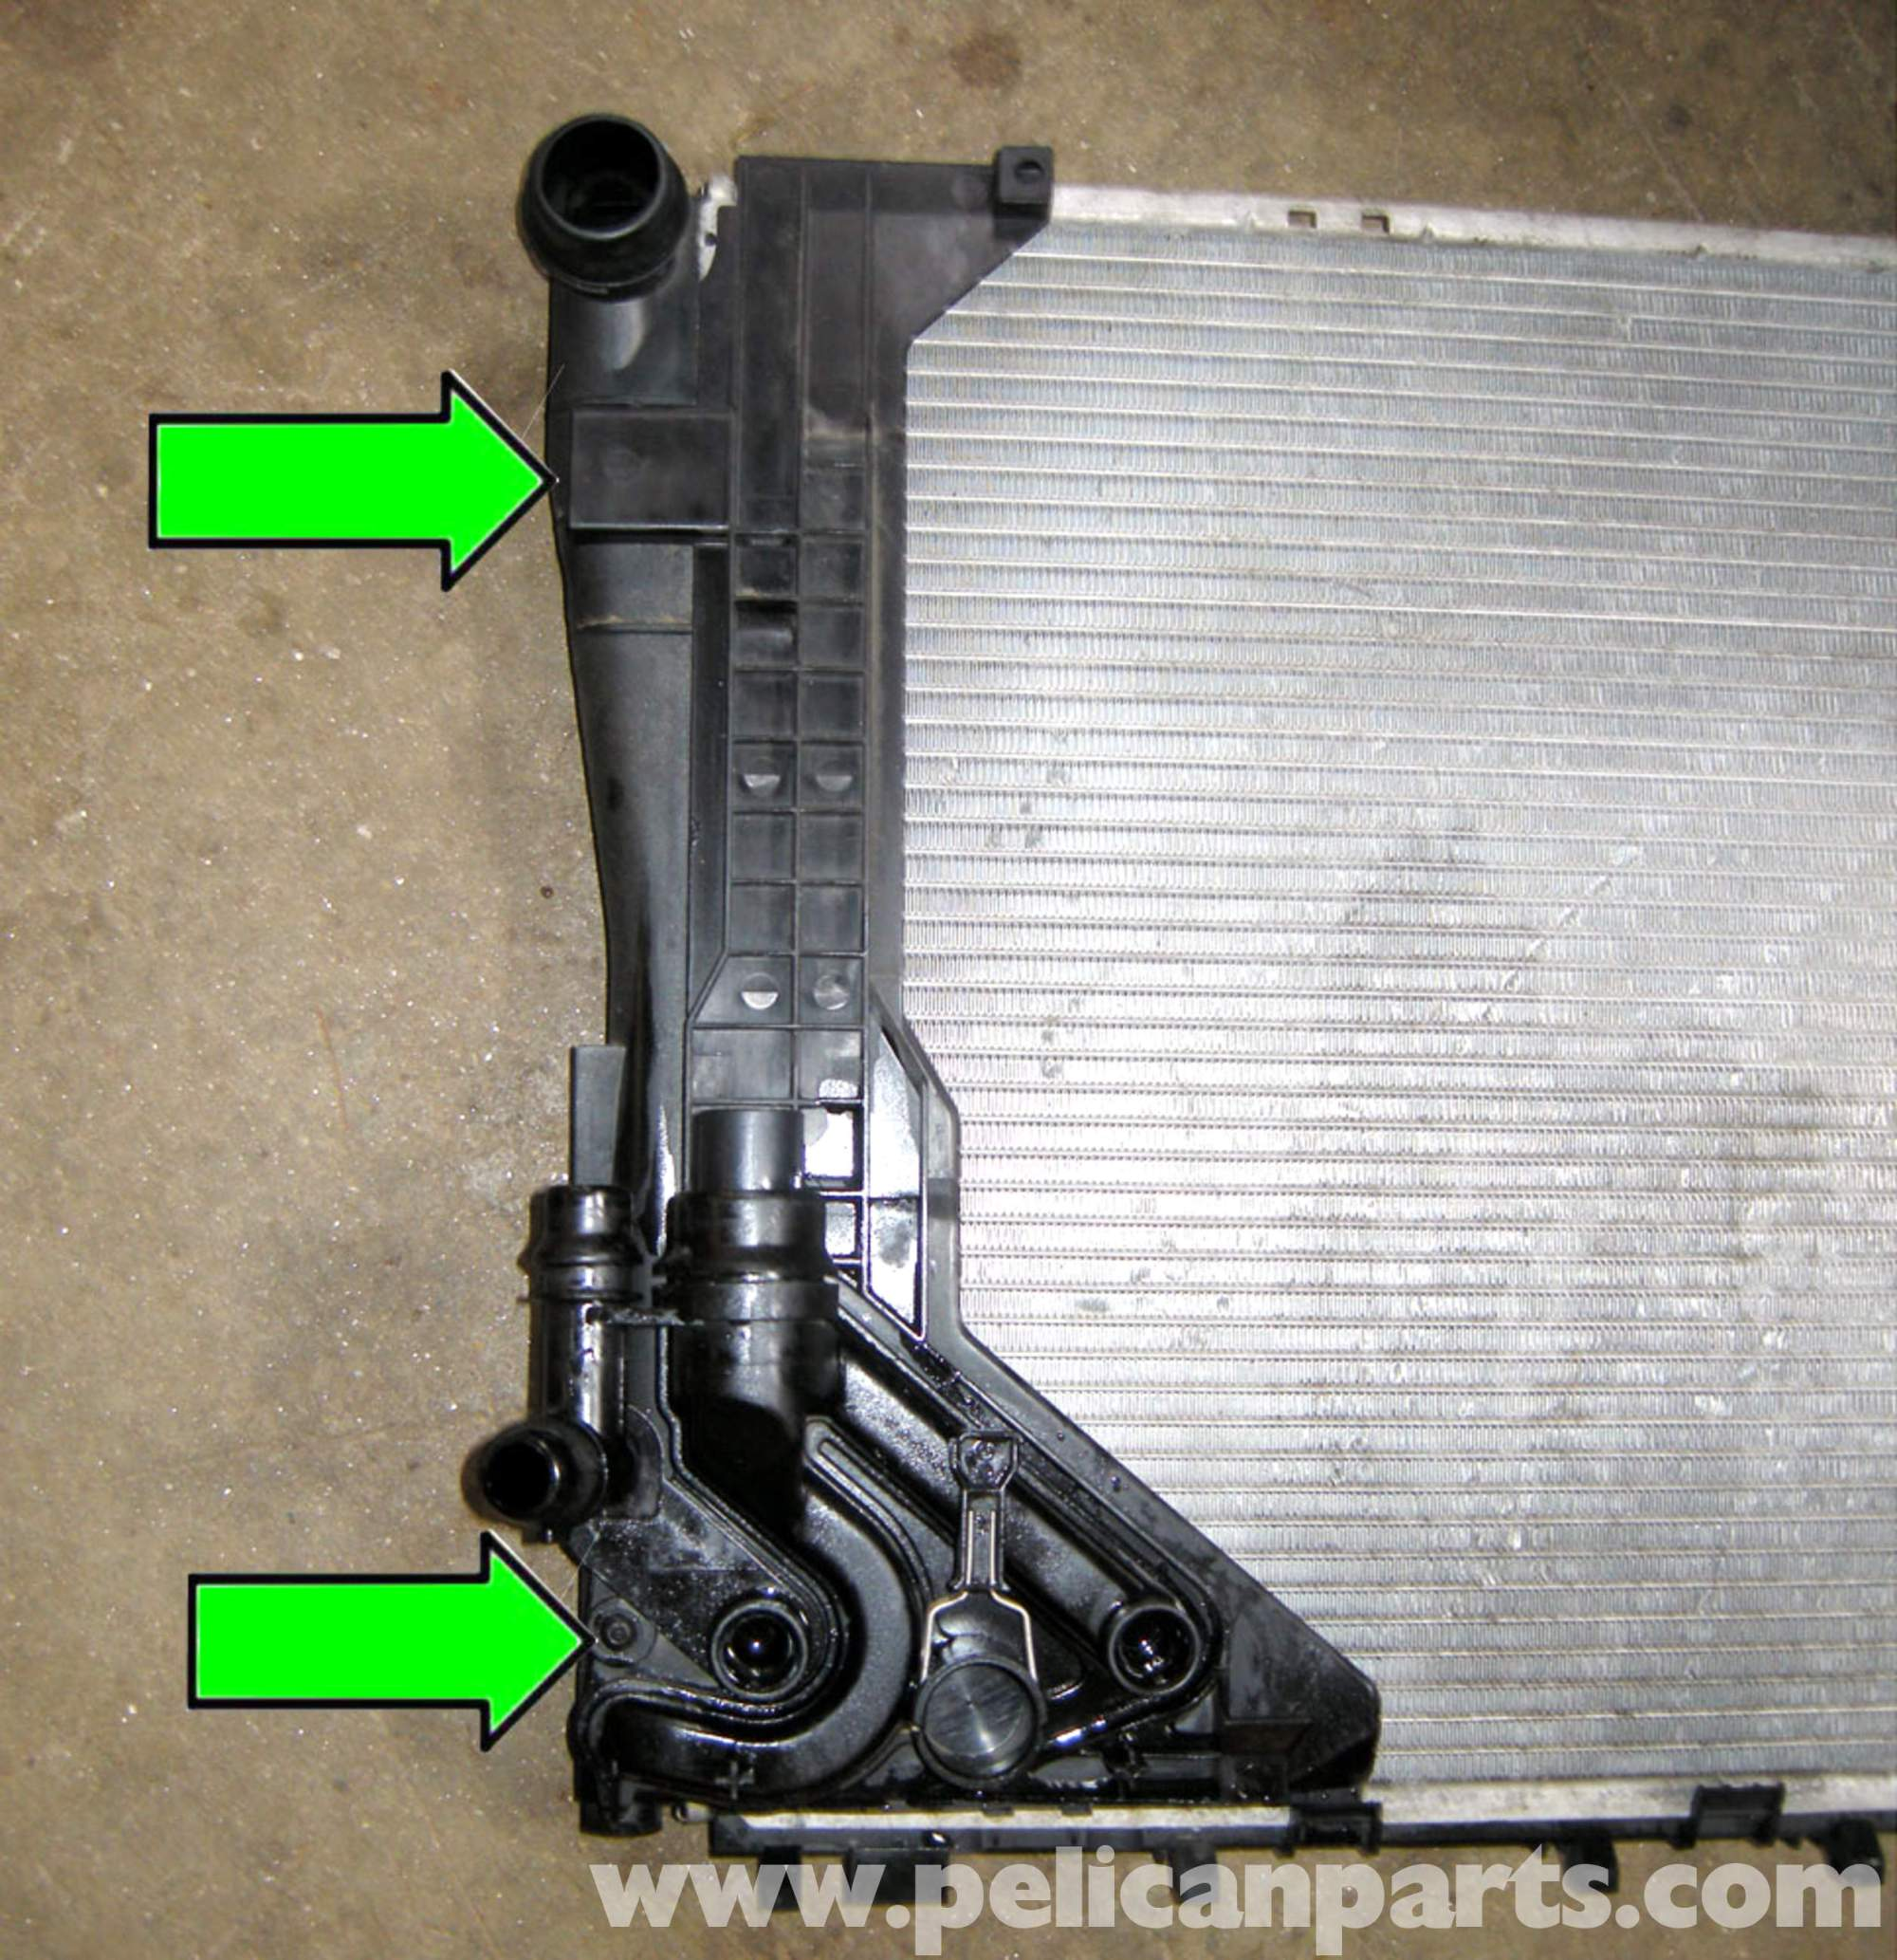 hight resolution of bmw e46 radiator replacement bmw 325i 2001 2005 bmw 325xi 2001 1991 325i motor diagram 1999 bmw radiator diagram